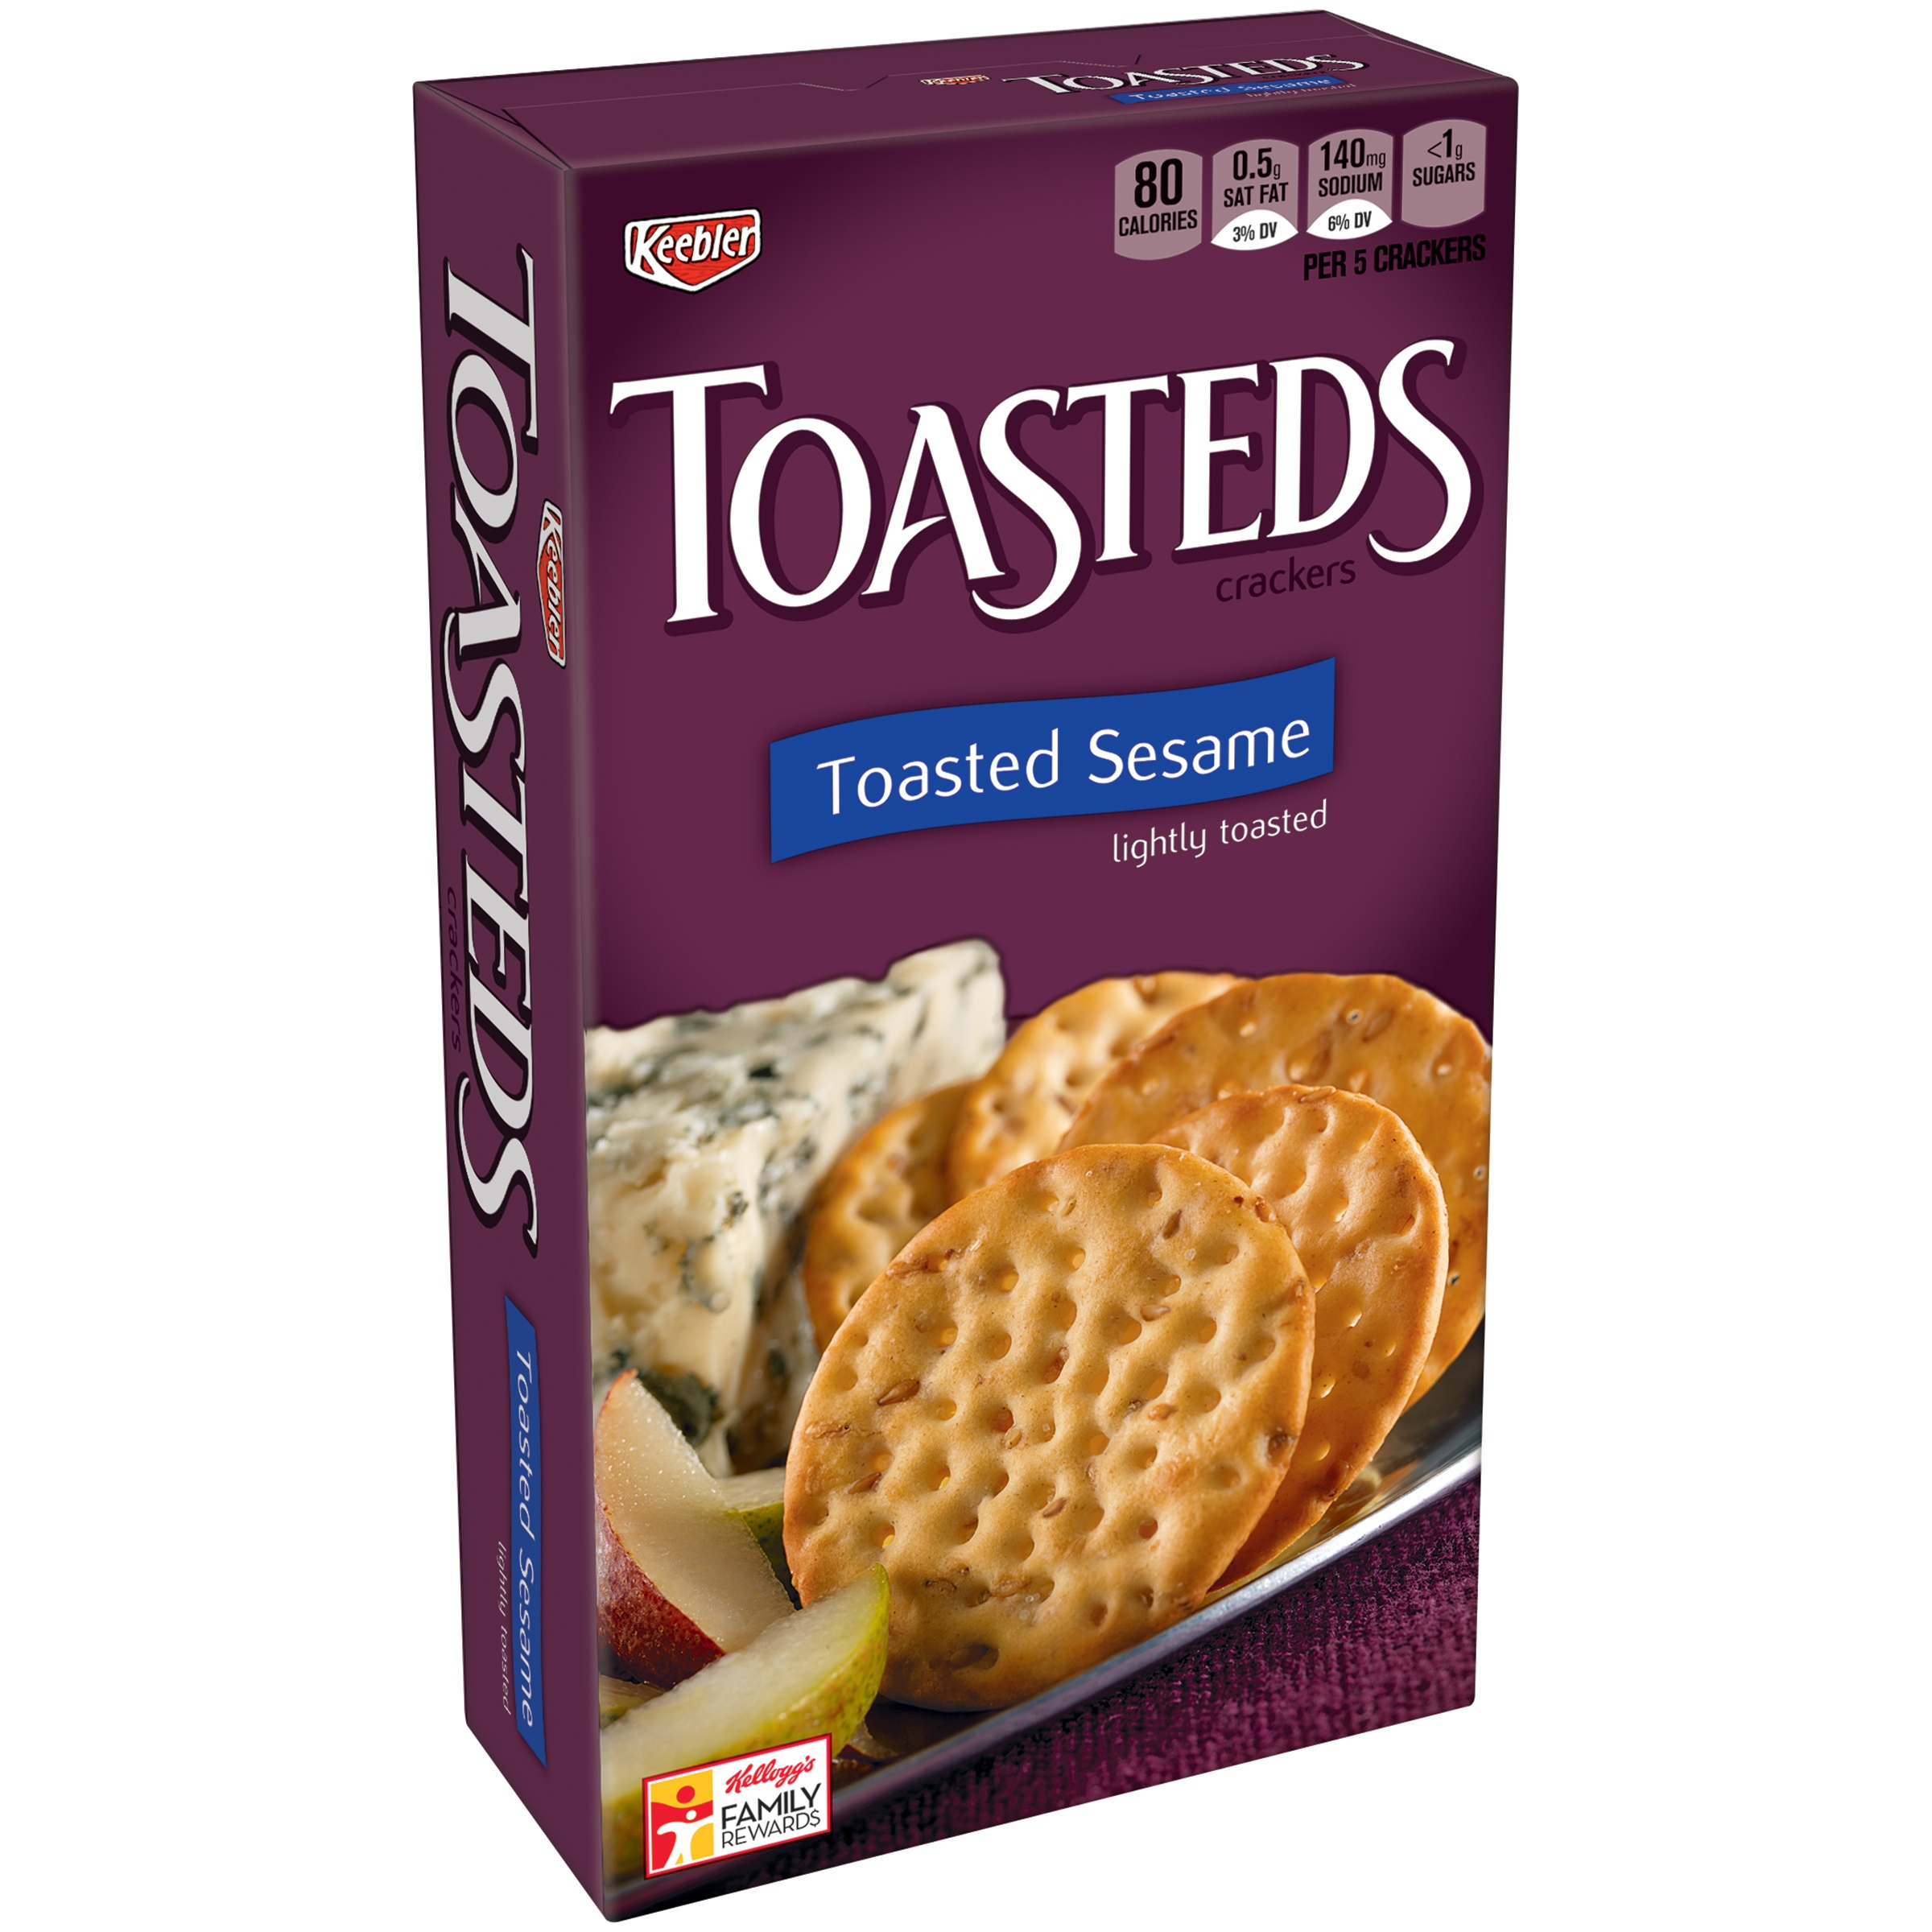 Keebler Toasteds Toasted Sesame Snack Crackers, 8 ounce